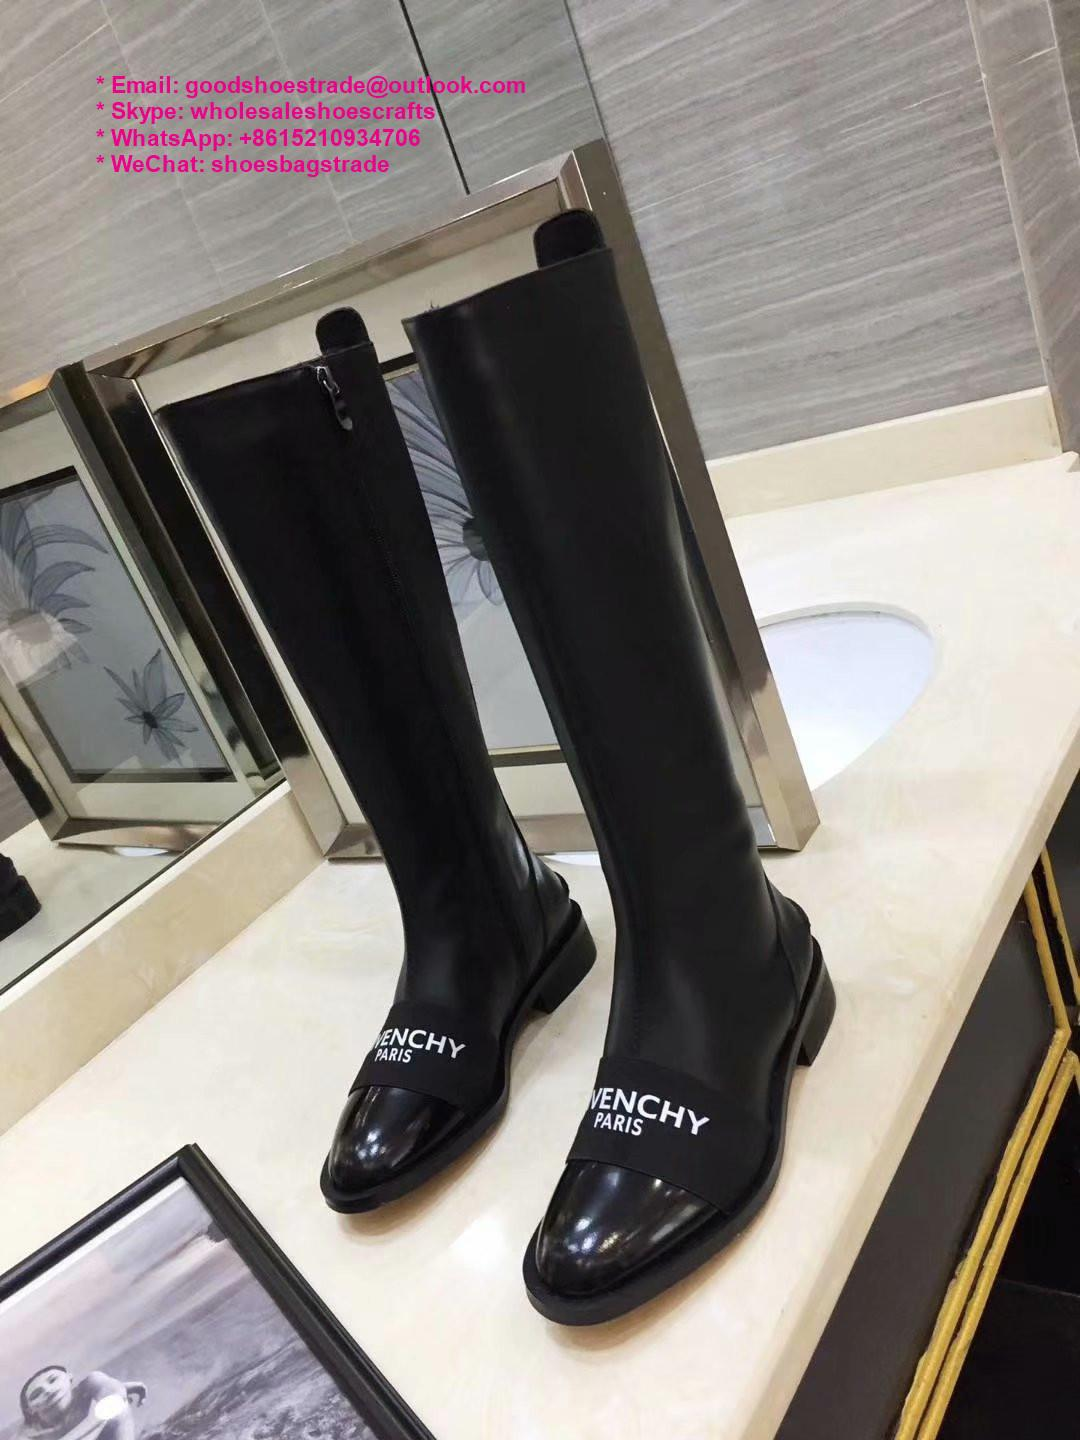 givenchy boots over the knee knitted rainboots in rubber shark lock boots 15